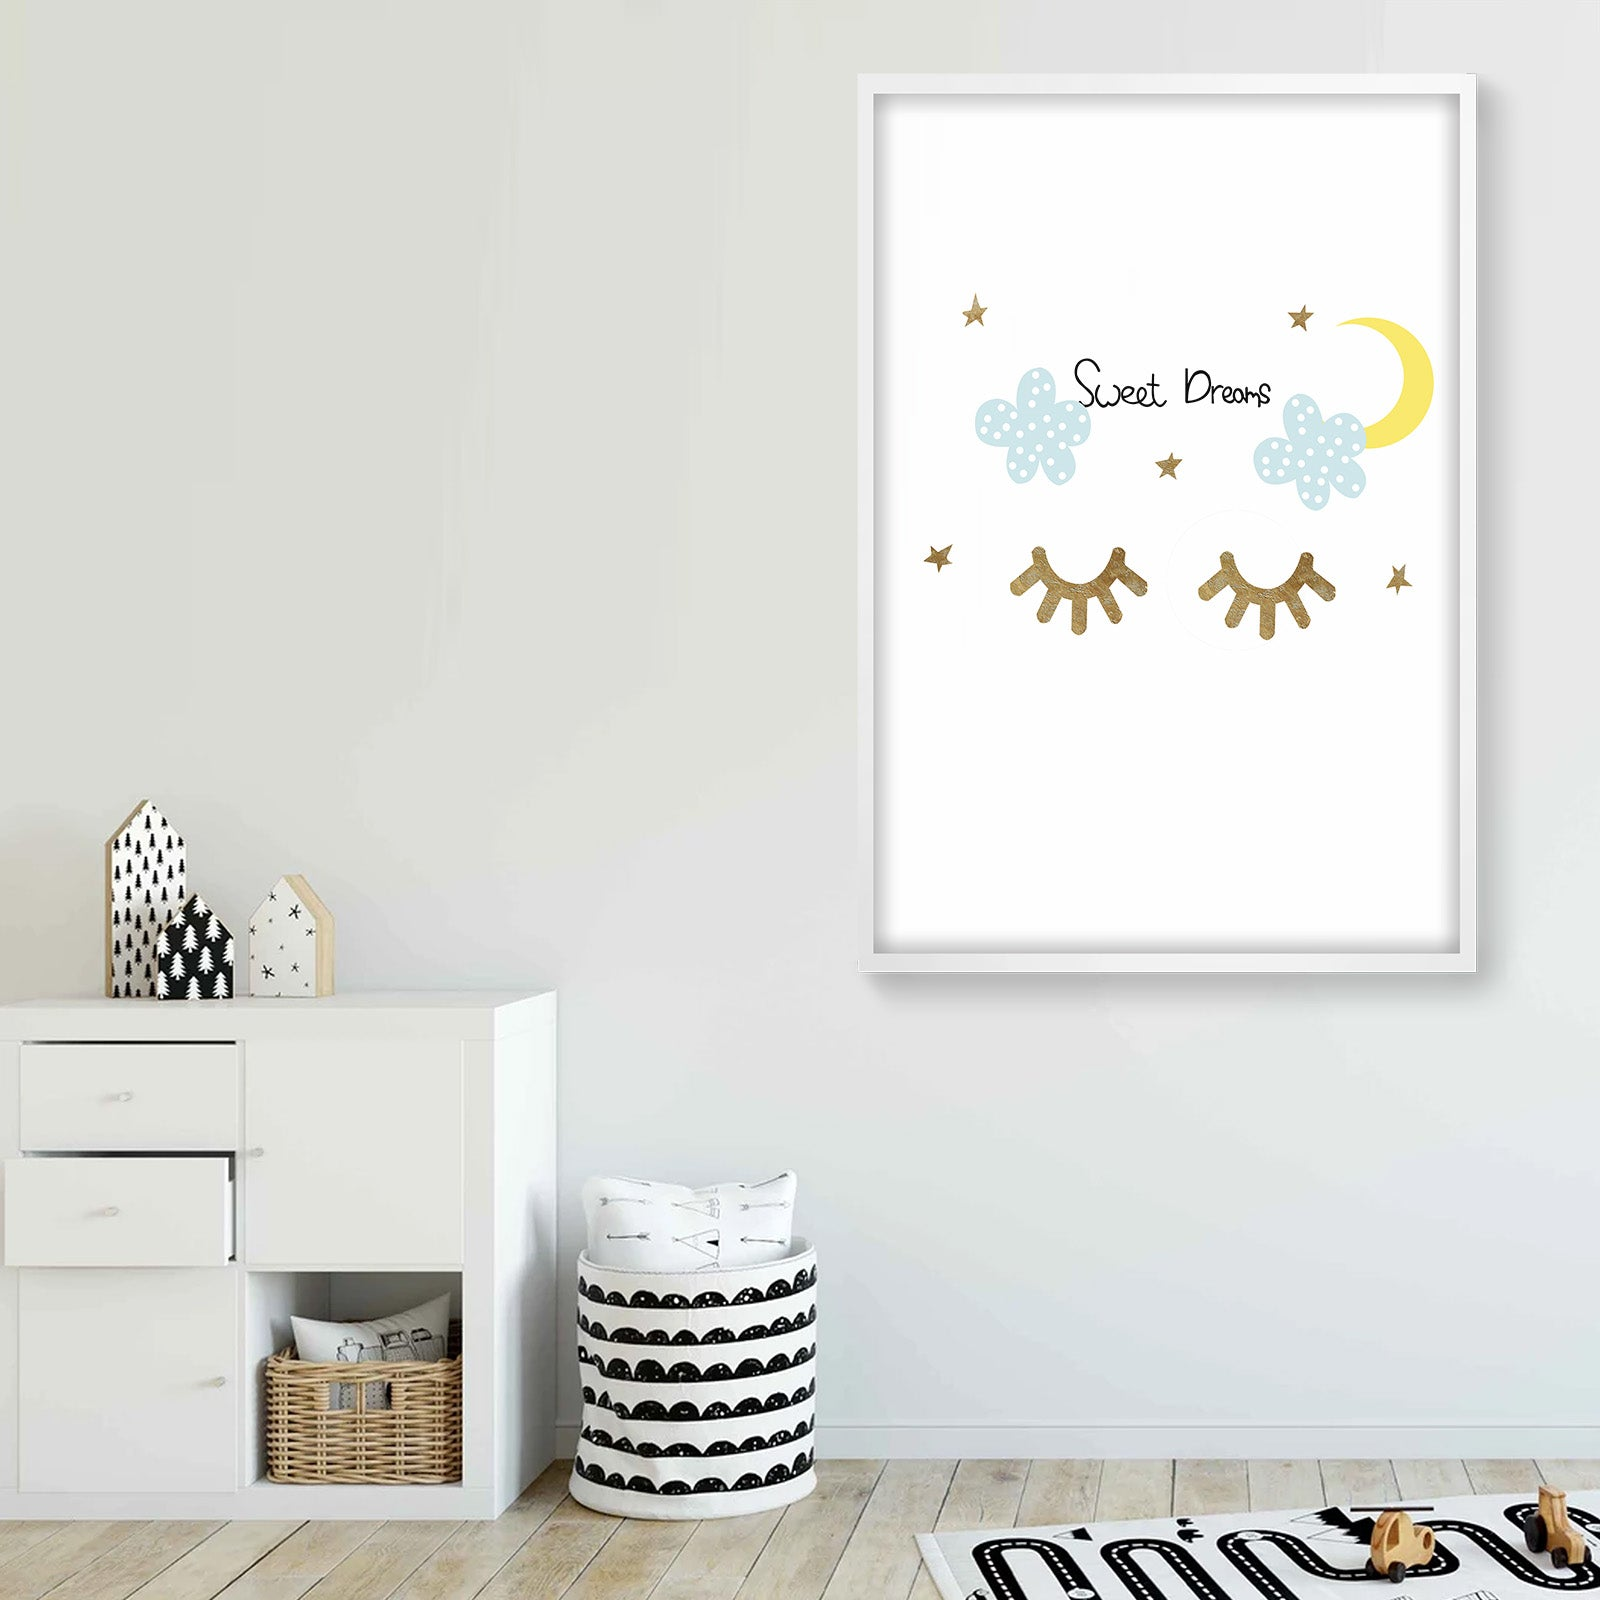 Framed Graphic Art Print  SOAPR0005 -  لوحه فنيه مطبوعه بالايطار - Shop Online Furniture and Home Decor Store in Dubai, UAE at ebarza